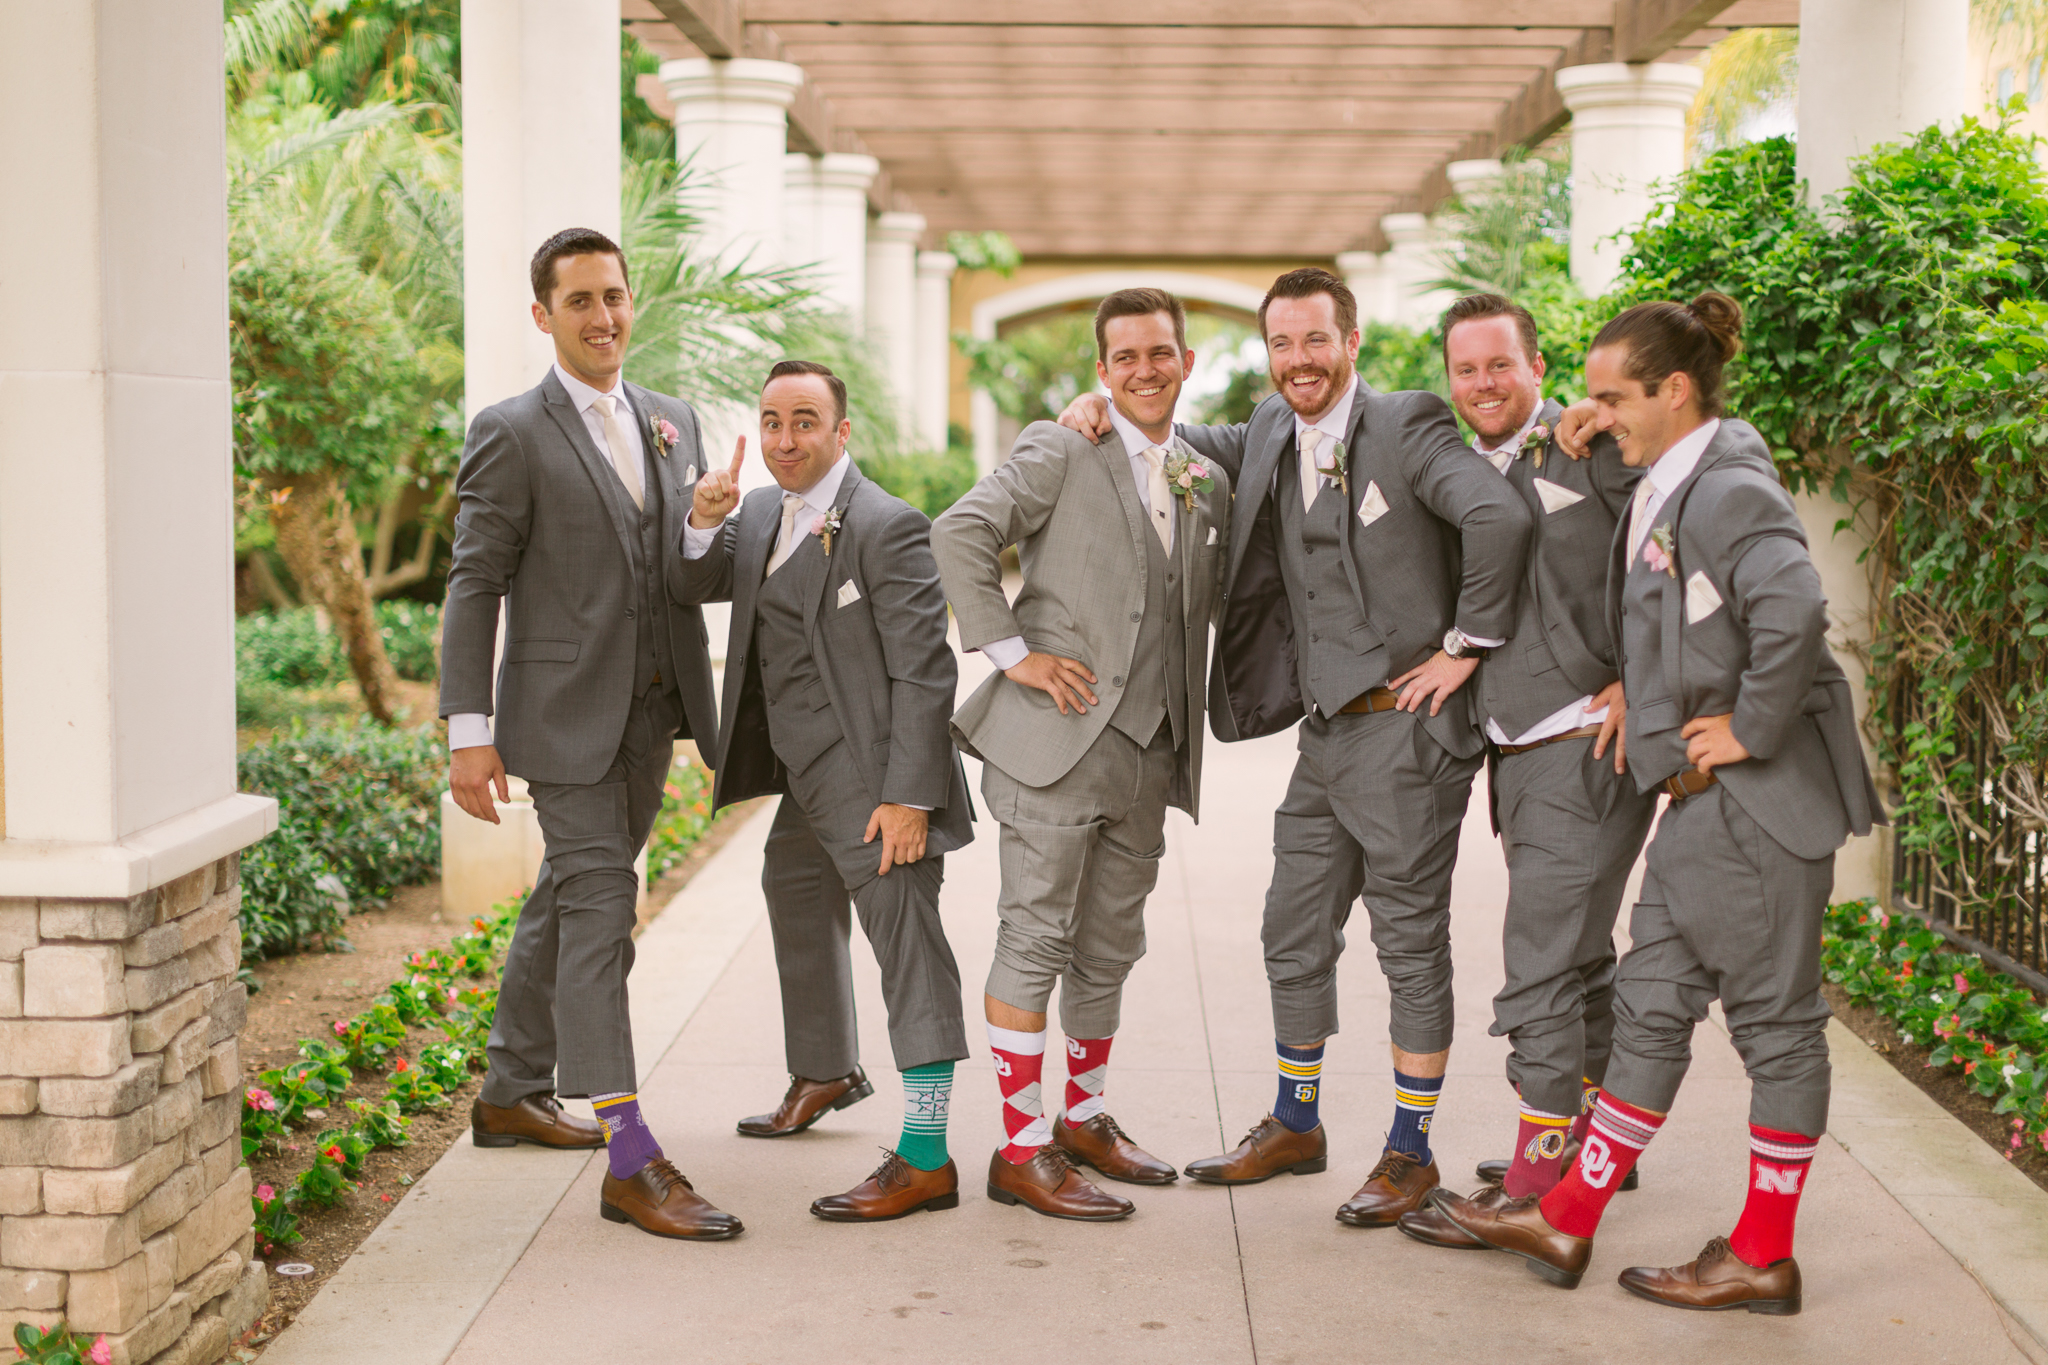 Groom and groomsmen take wedding photos for San Diego, California outdoor wedding planned by Exhale Events. See all the beautiful details at exhale-events.com!